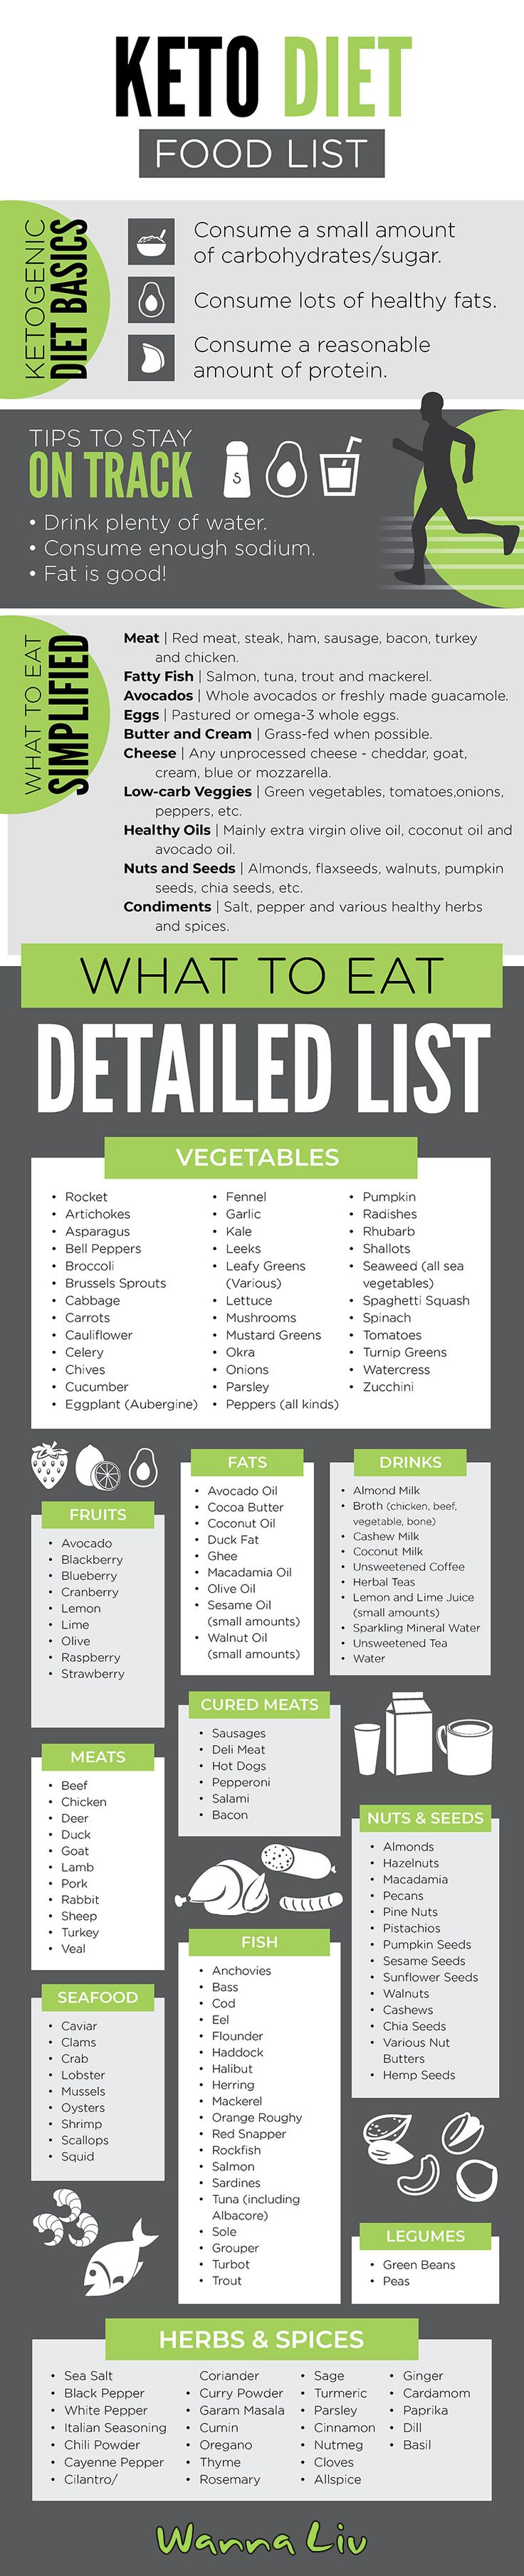 The most comprehensive, detailed list of foods for the Keto Diet found anywhere ...